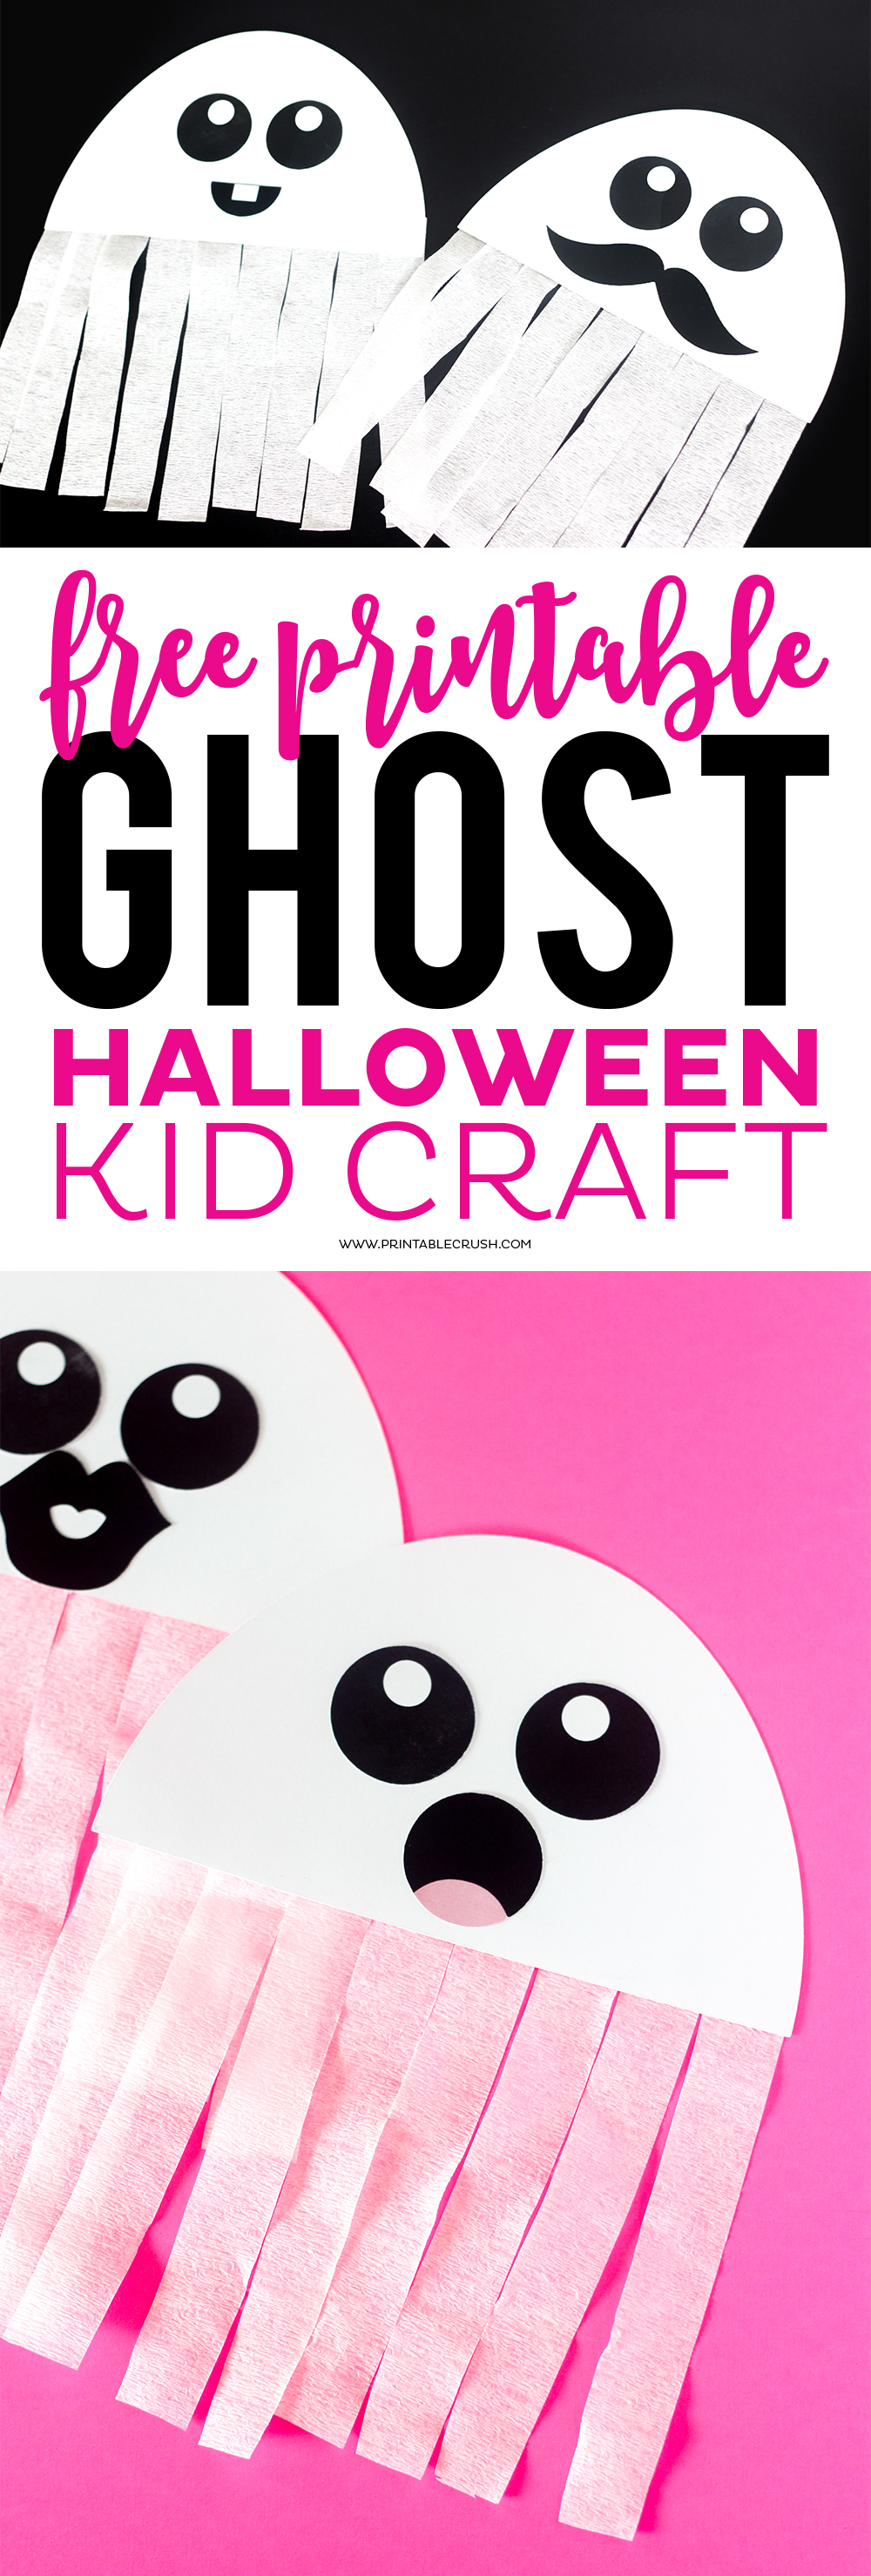 photo relating to Halloween Craft Printable named Absolutely free Printable Ghost Halloween Craft - Printable Crush